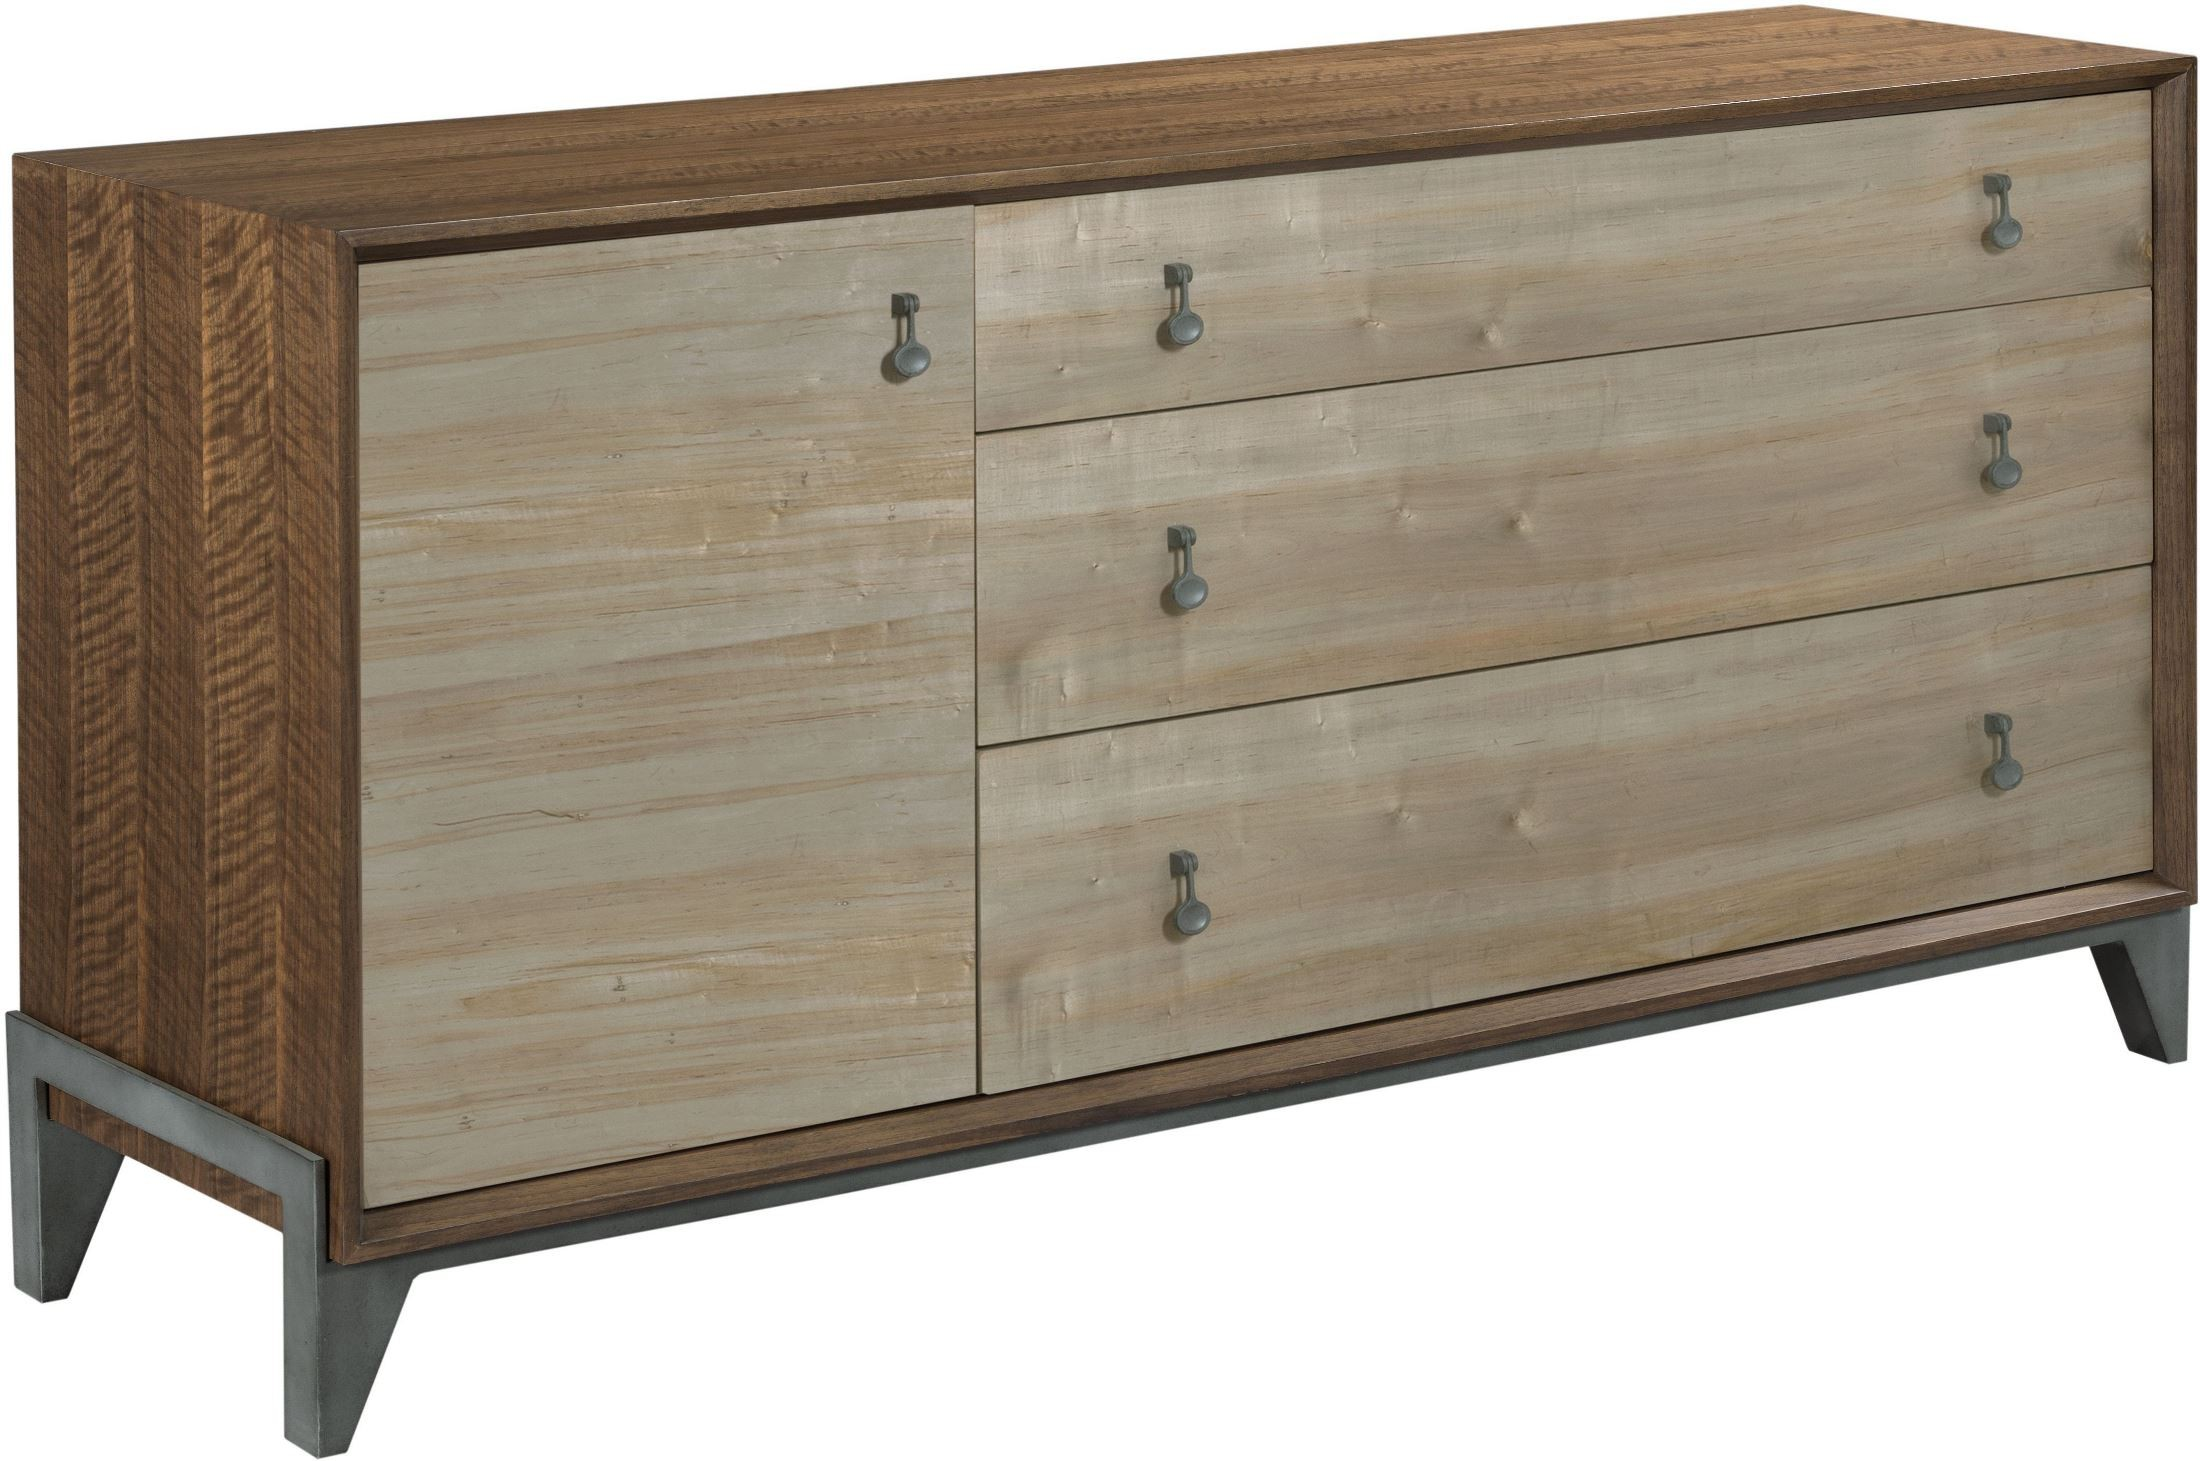 Ad modern synergy maple nouveau dresser from american drew - Contemporary maple bedroom furniture ...